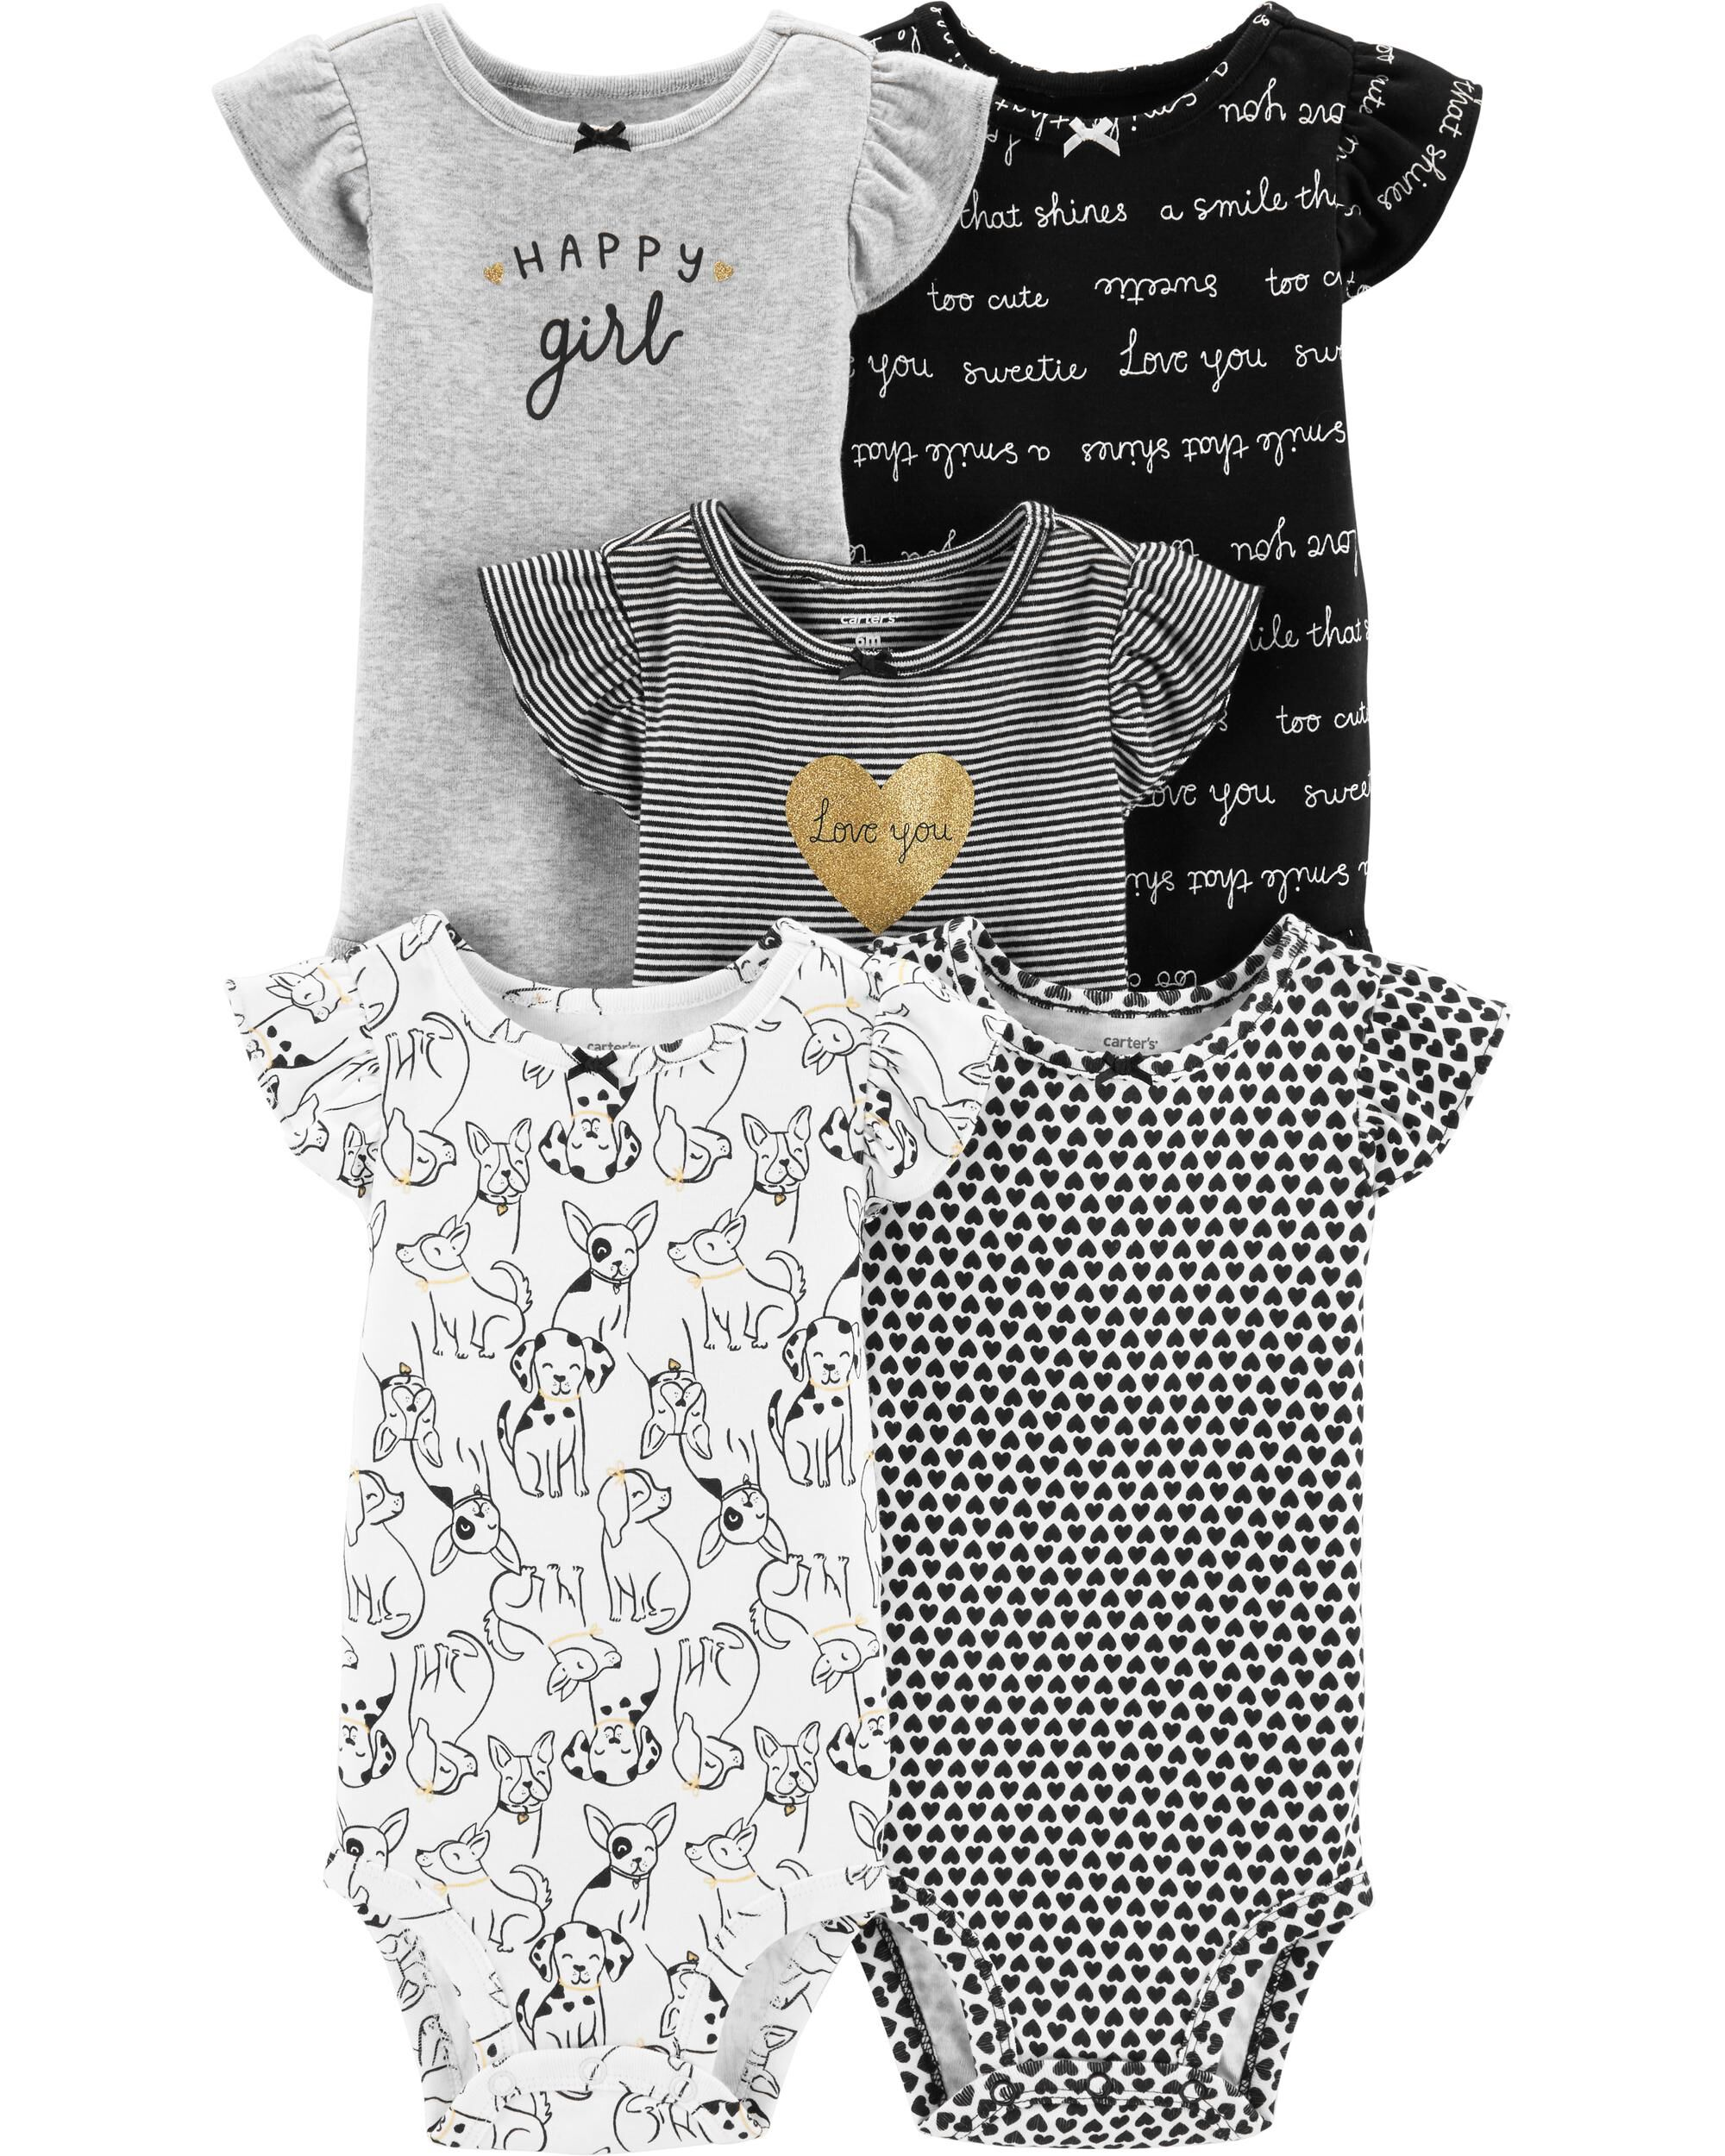 5 Baby Girl Short Sleeved Body Suits 100% Cotton Girls' Clothing (newborn-5t)